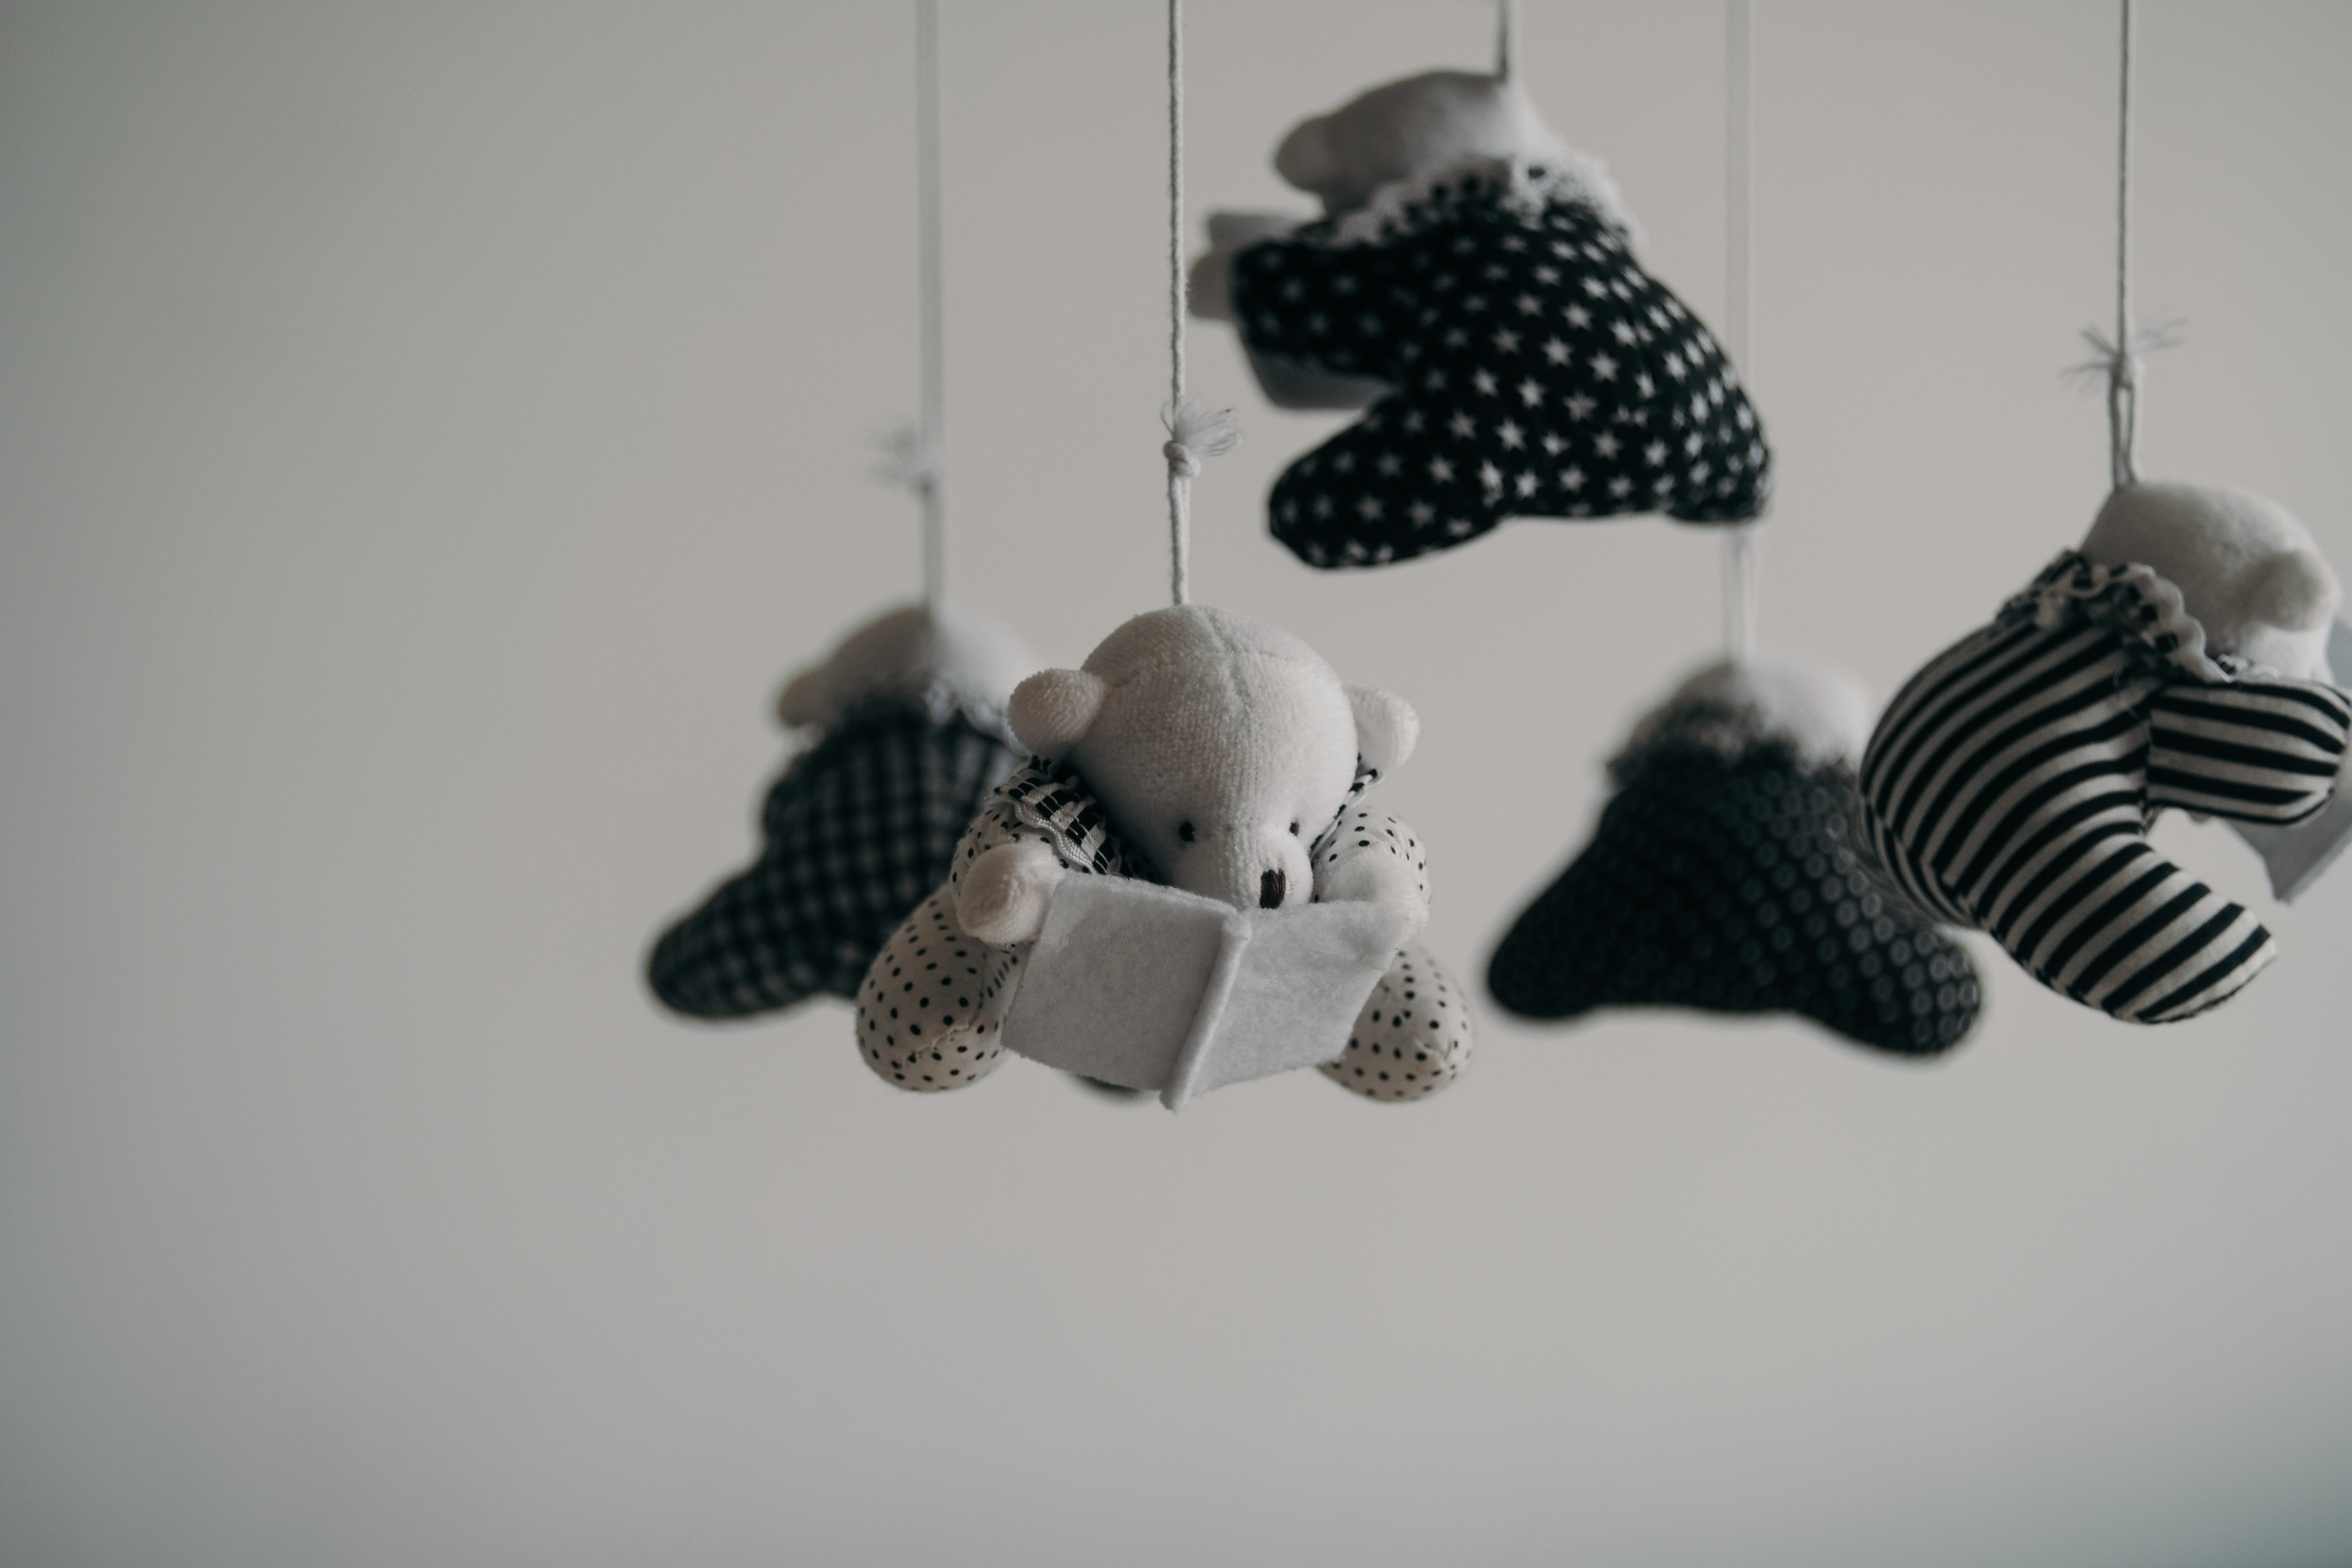 small fabric teddy bears, connected in a mobile, are suspended over an imagined baby's bassinet